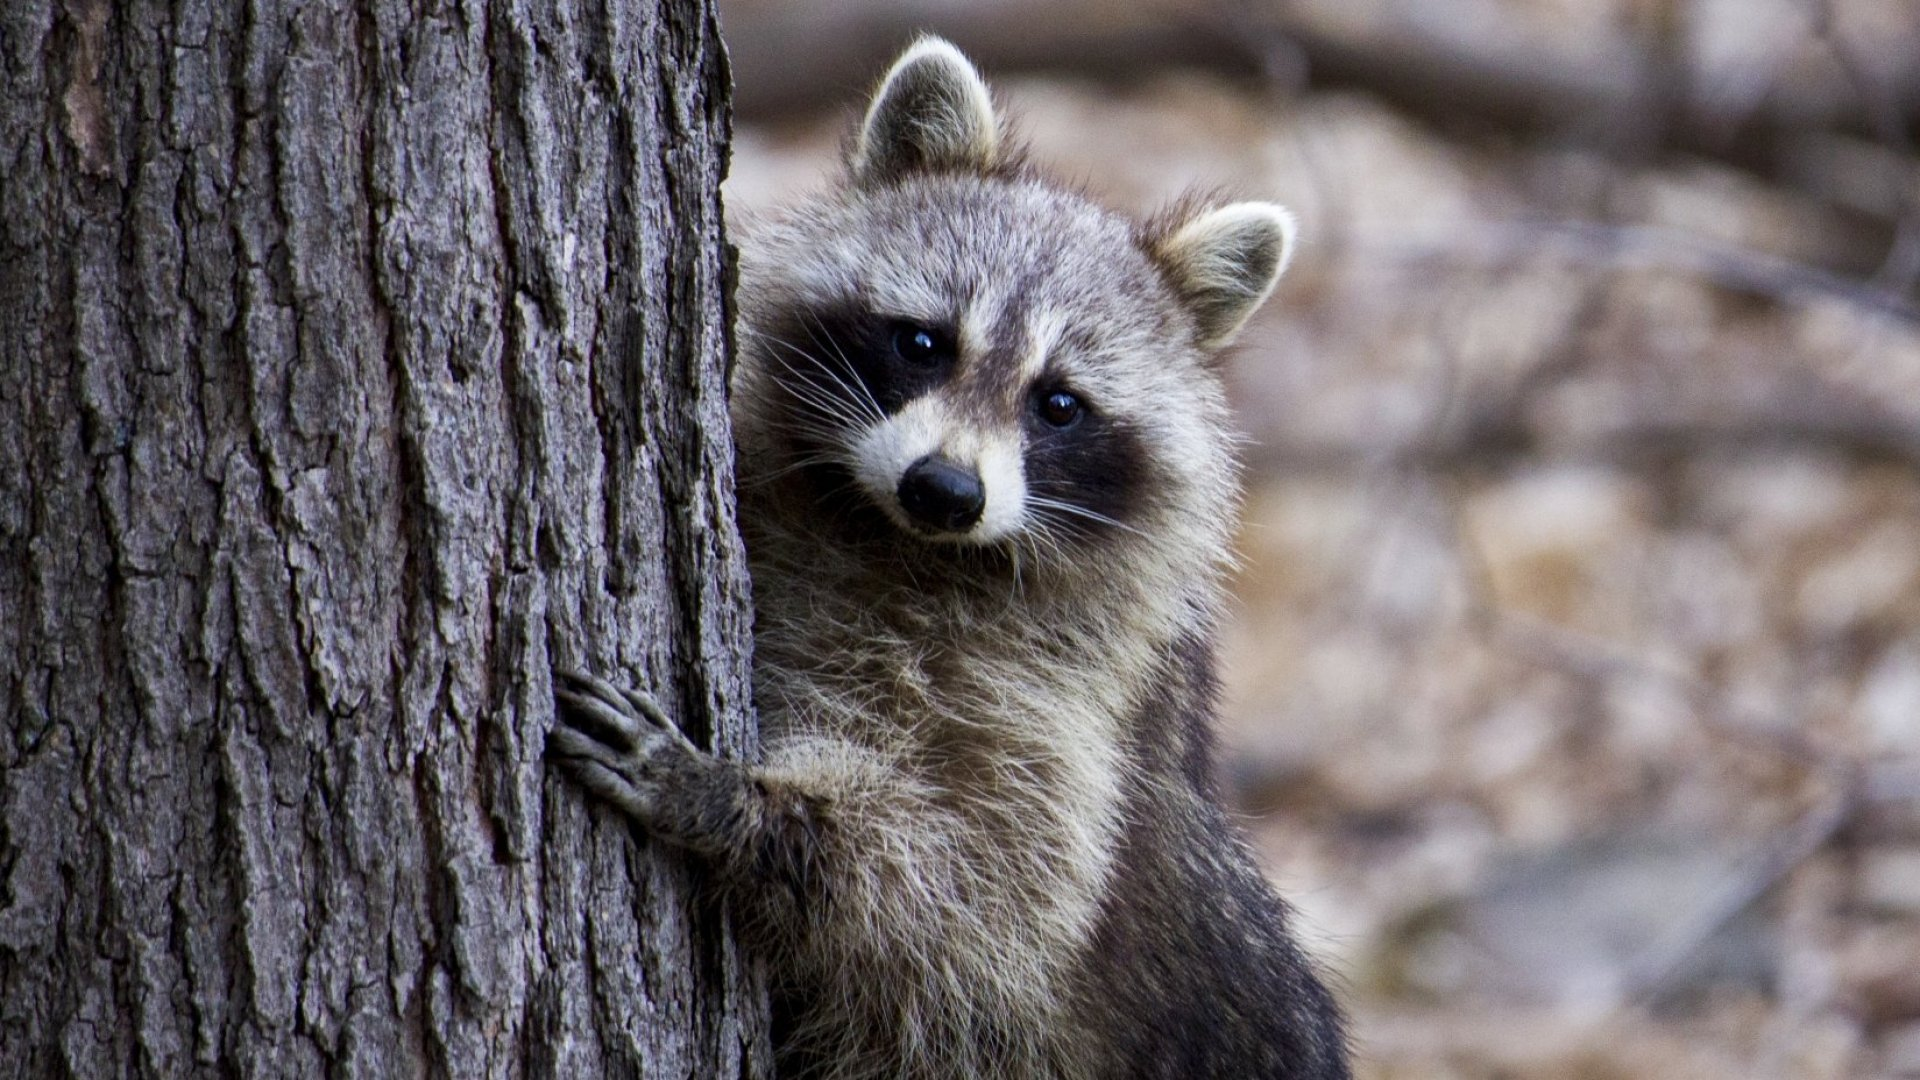 A Minnesota Raccoon's Death-Defying Feat Went Viral--and Revealed 3 Leadership Lessons in the Process